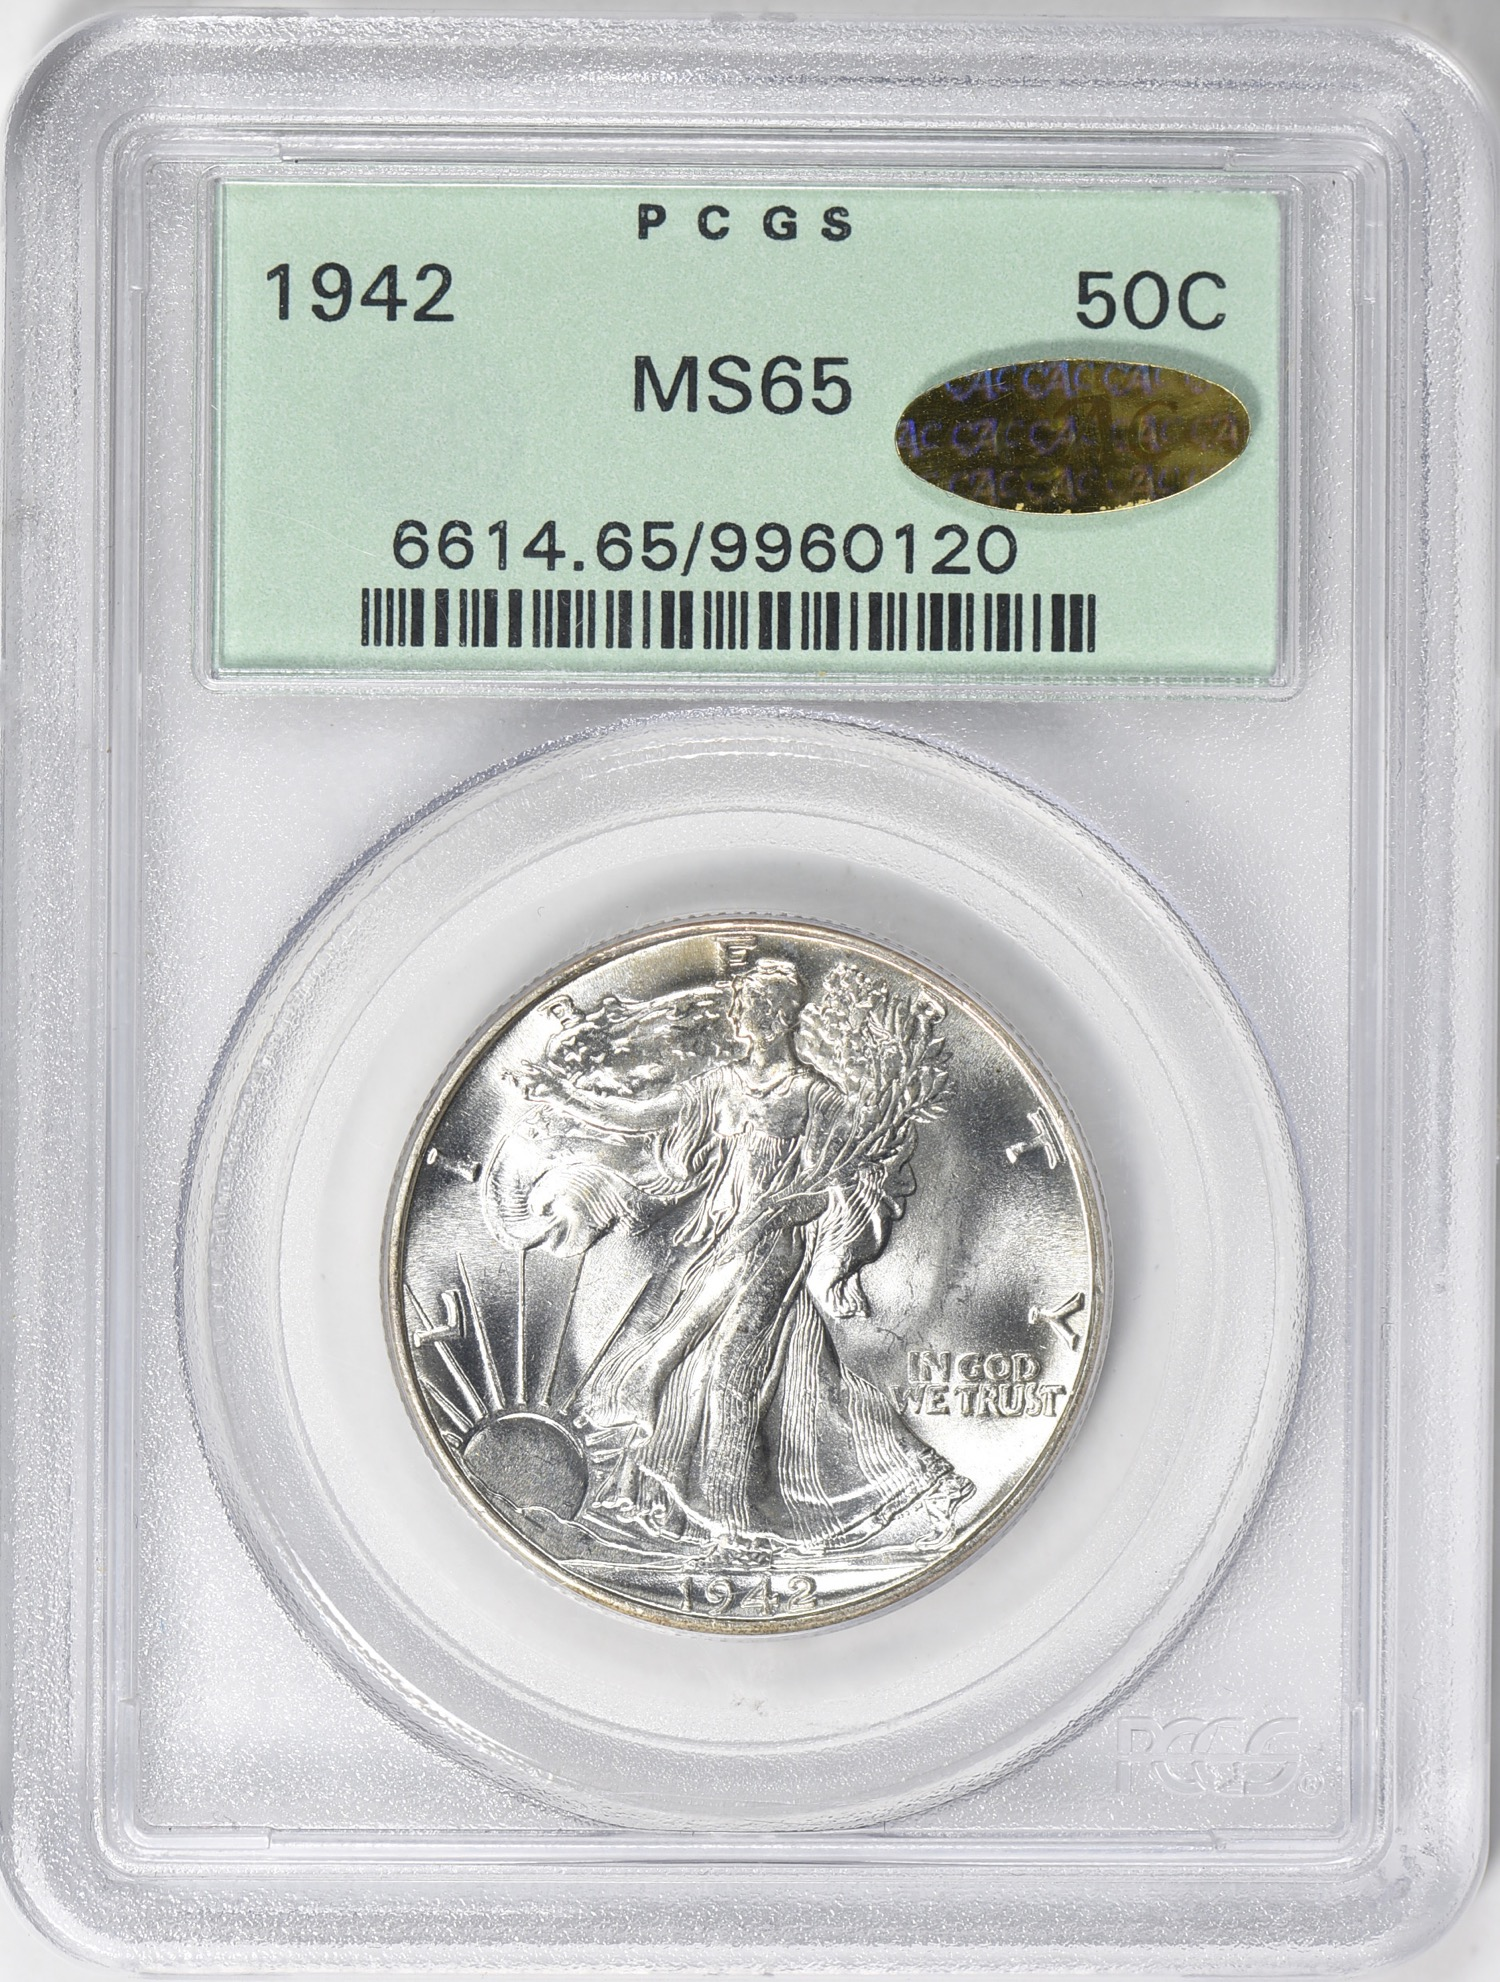 1942 MS65 CAC(Gold) OGH - Acquired 5.26.19 GreatCollections. CC can never resist a gem coin in an OGH with a gold CAC sticker.